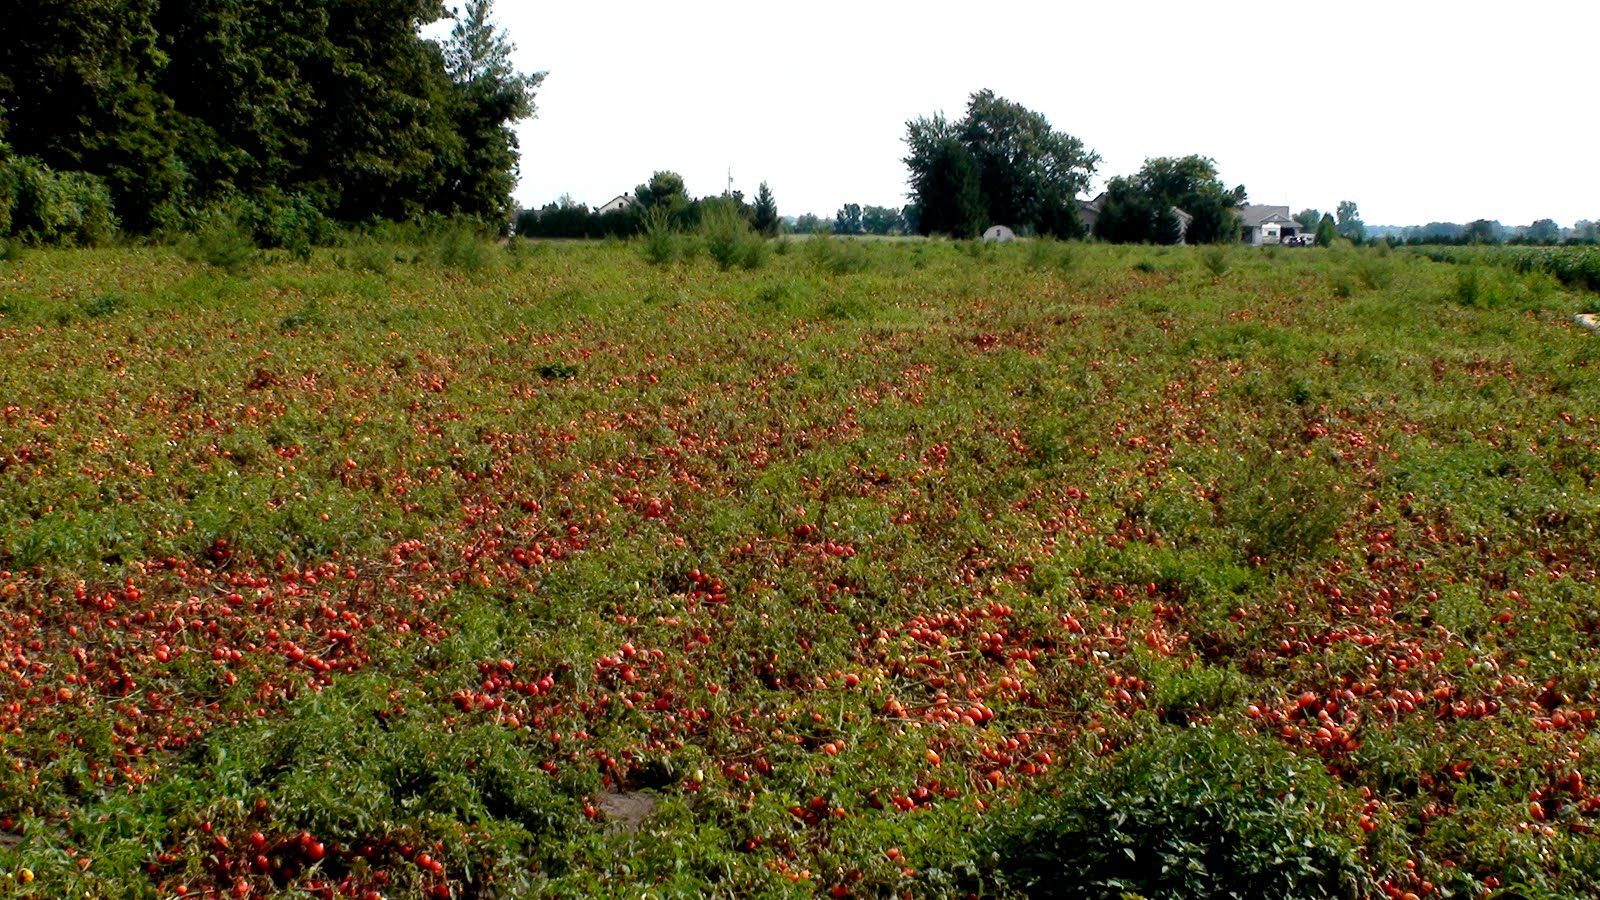 Acres and acres of tomatoes